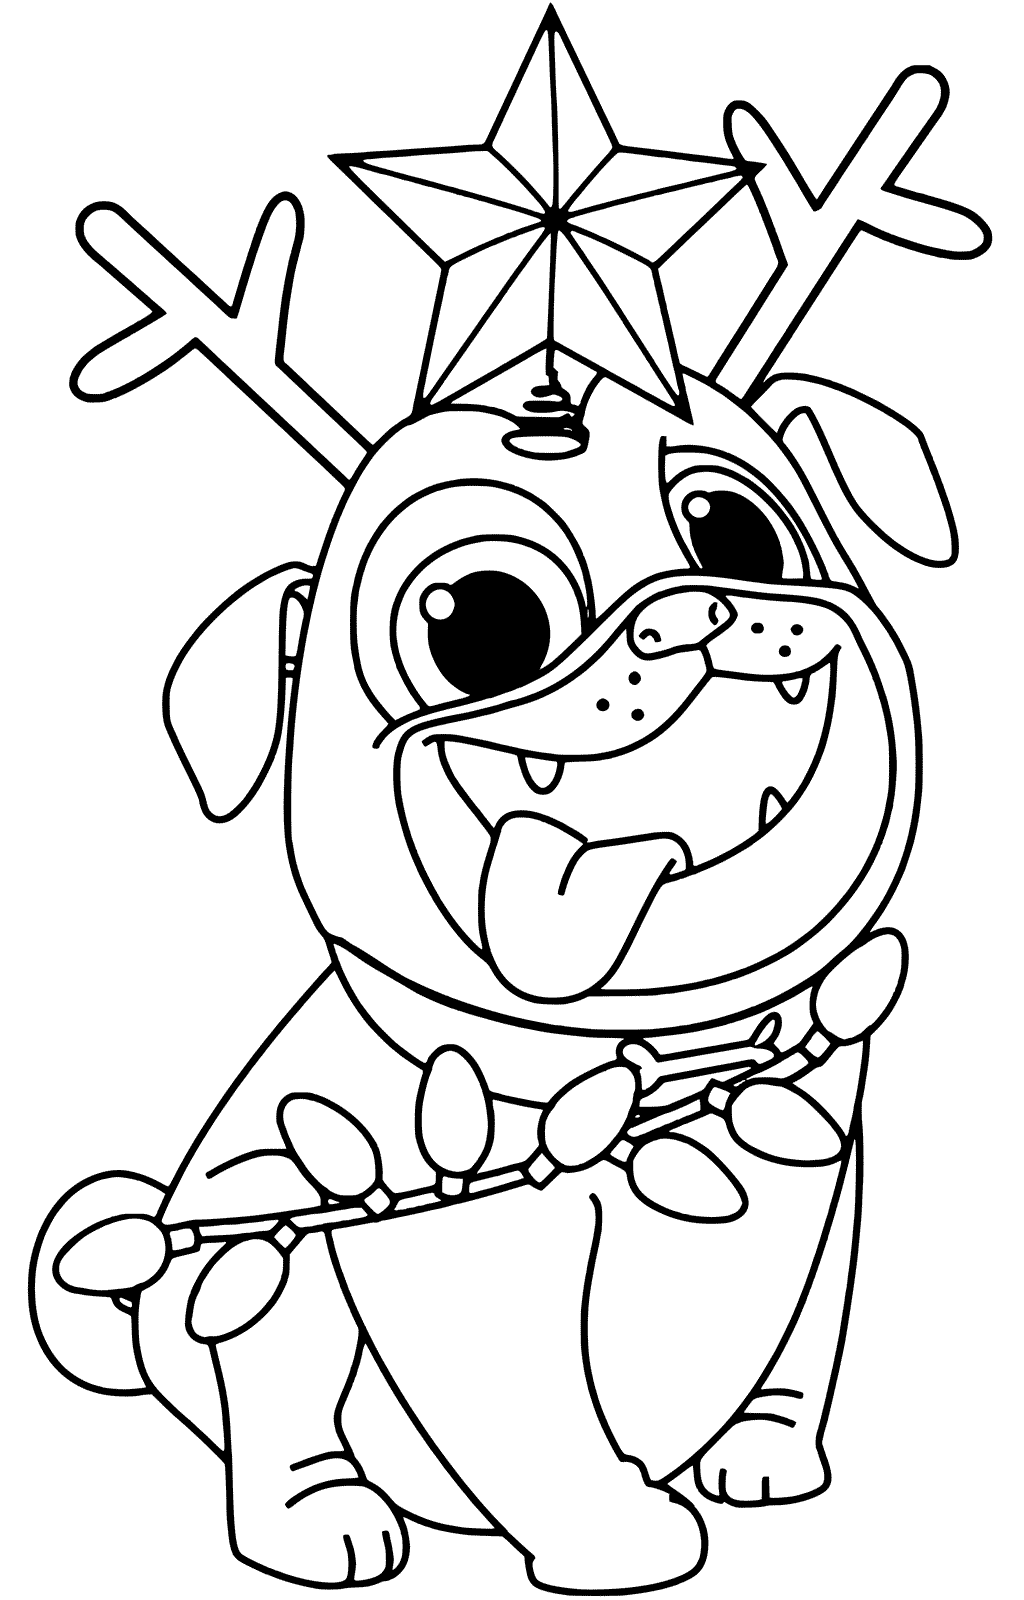 coloring pages to print dogs free printable puppies coloring pages for kids pages to coloring print dogs